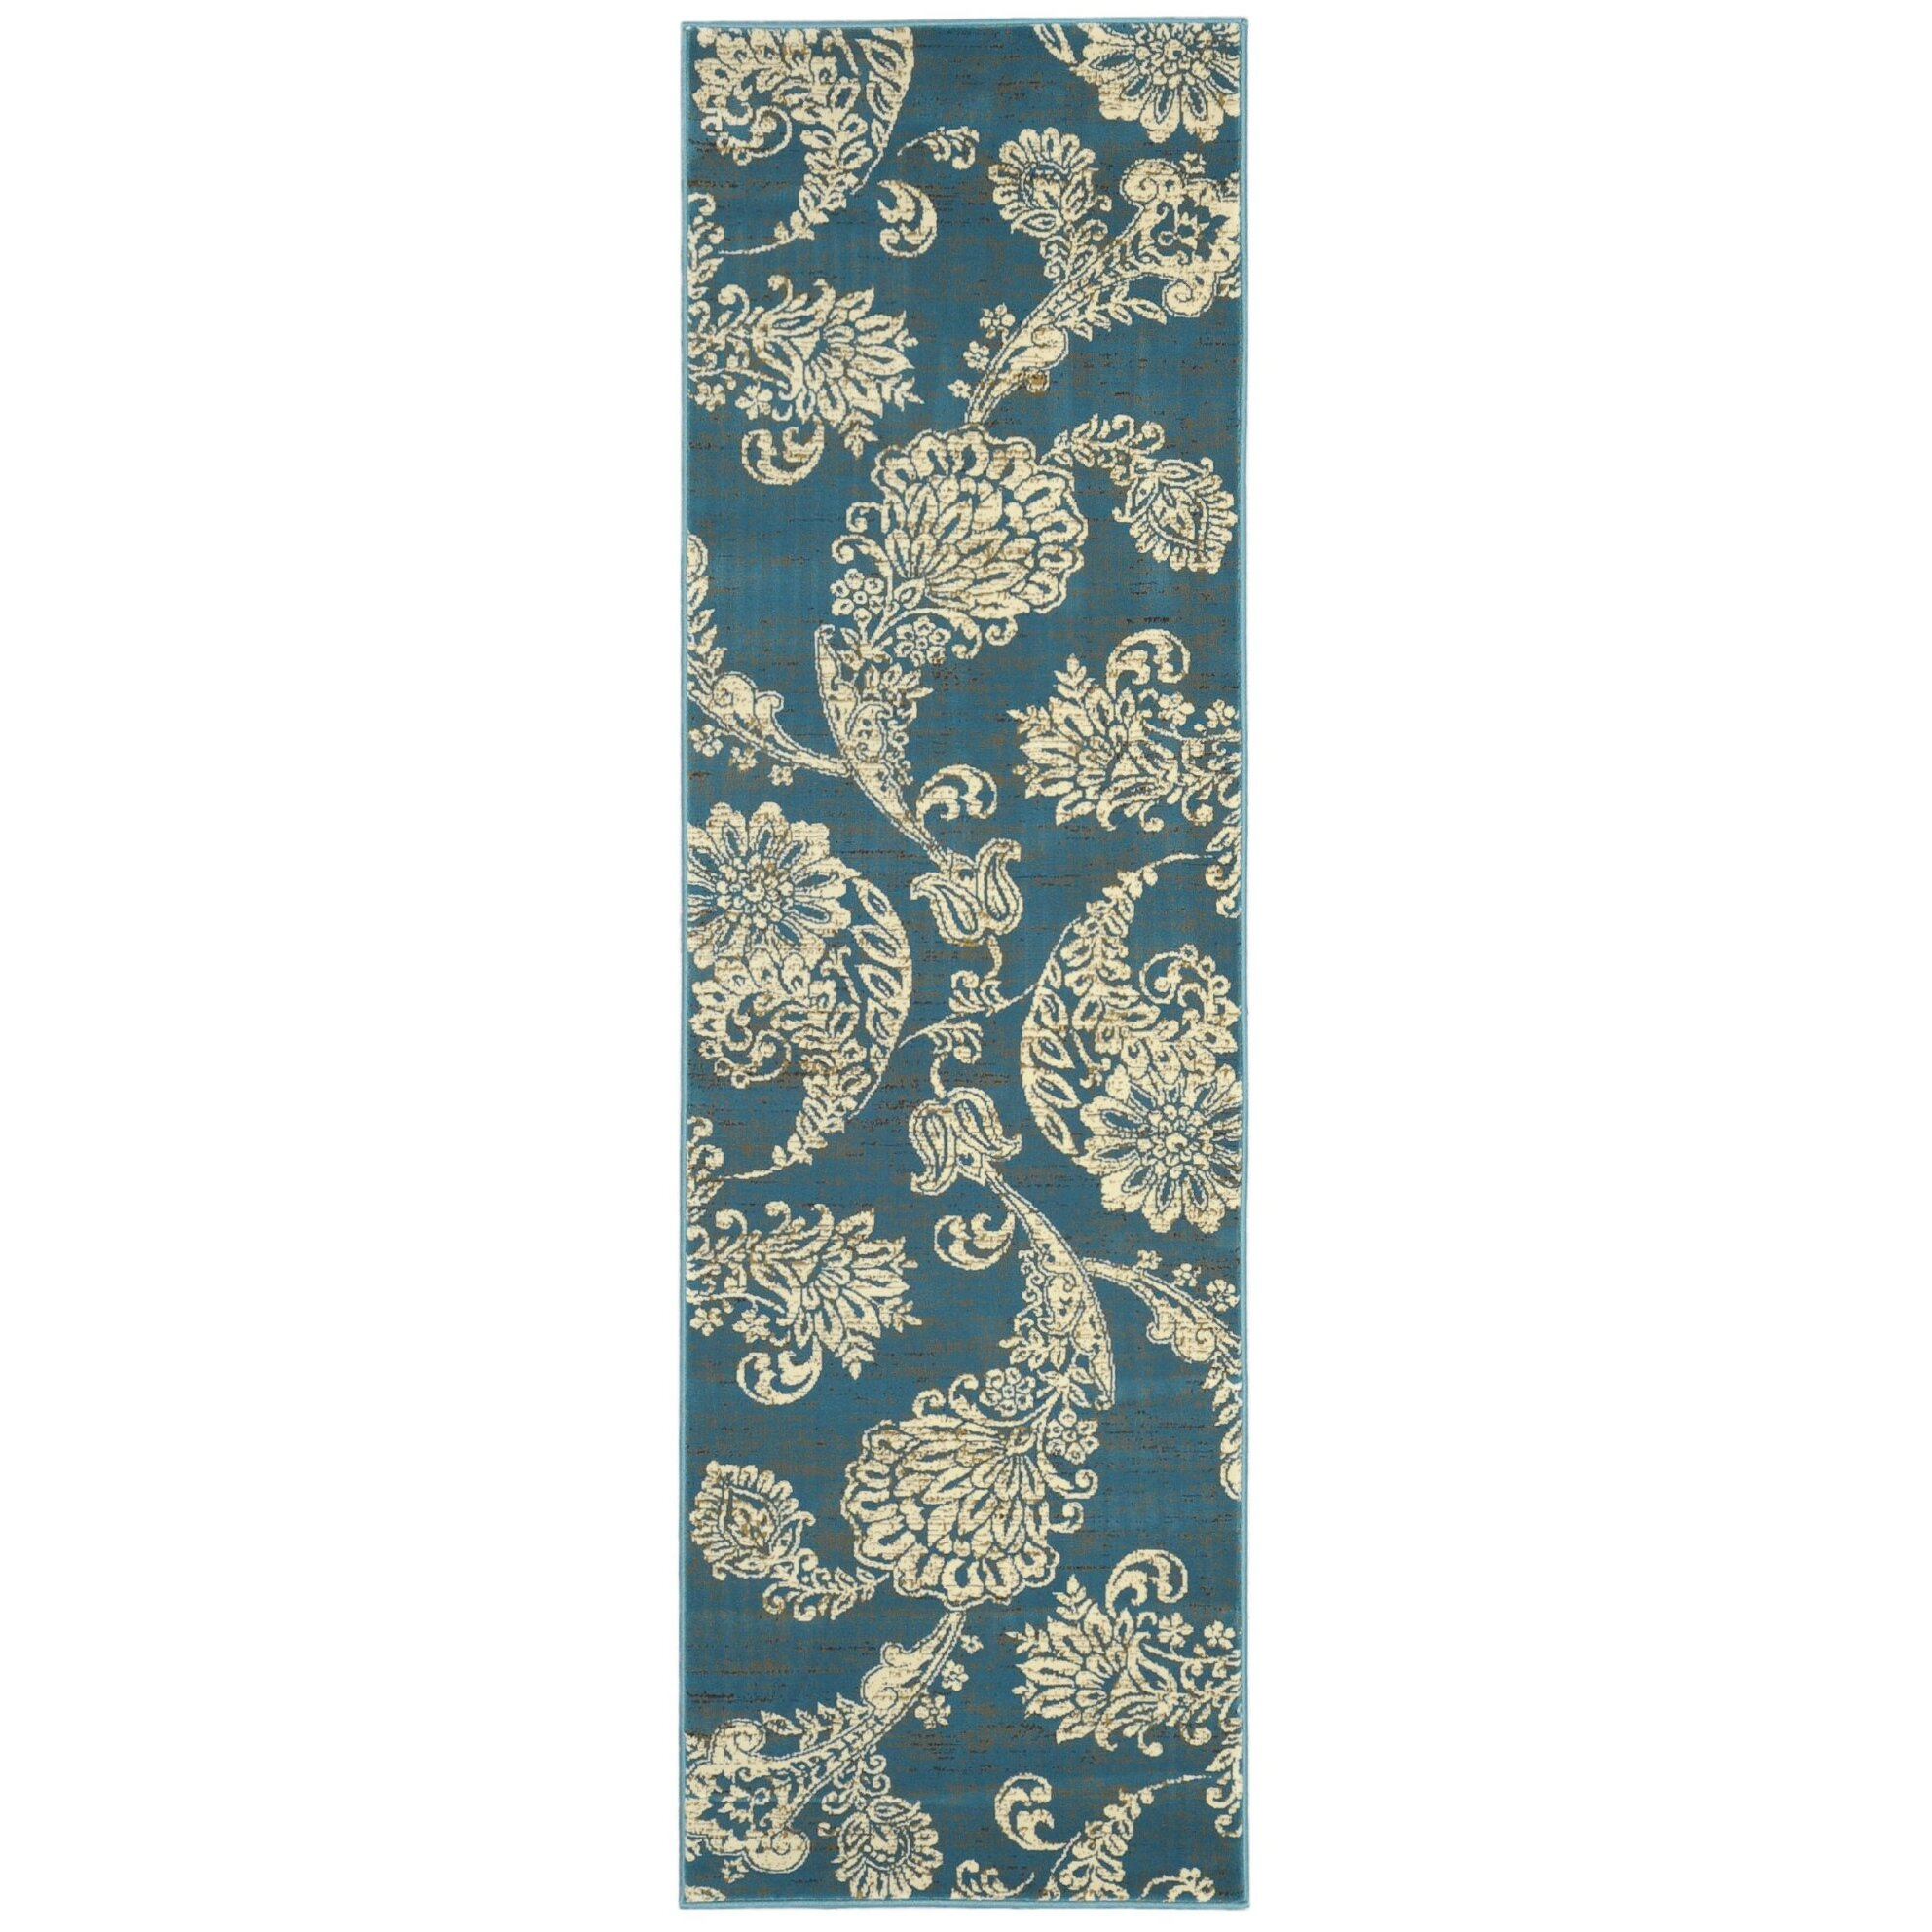 Lush Maxy Home 1-Million-Point Floral Paisley Contemporary